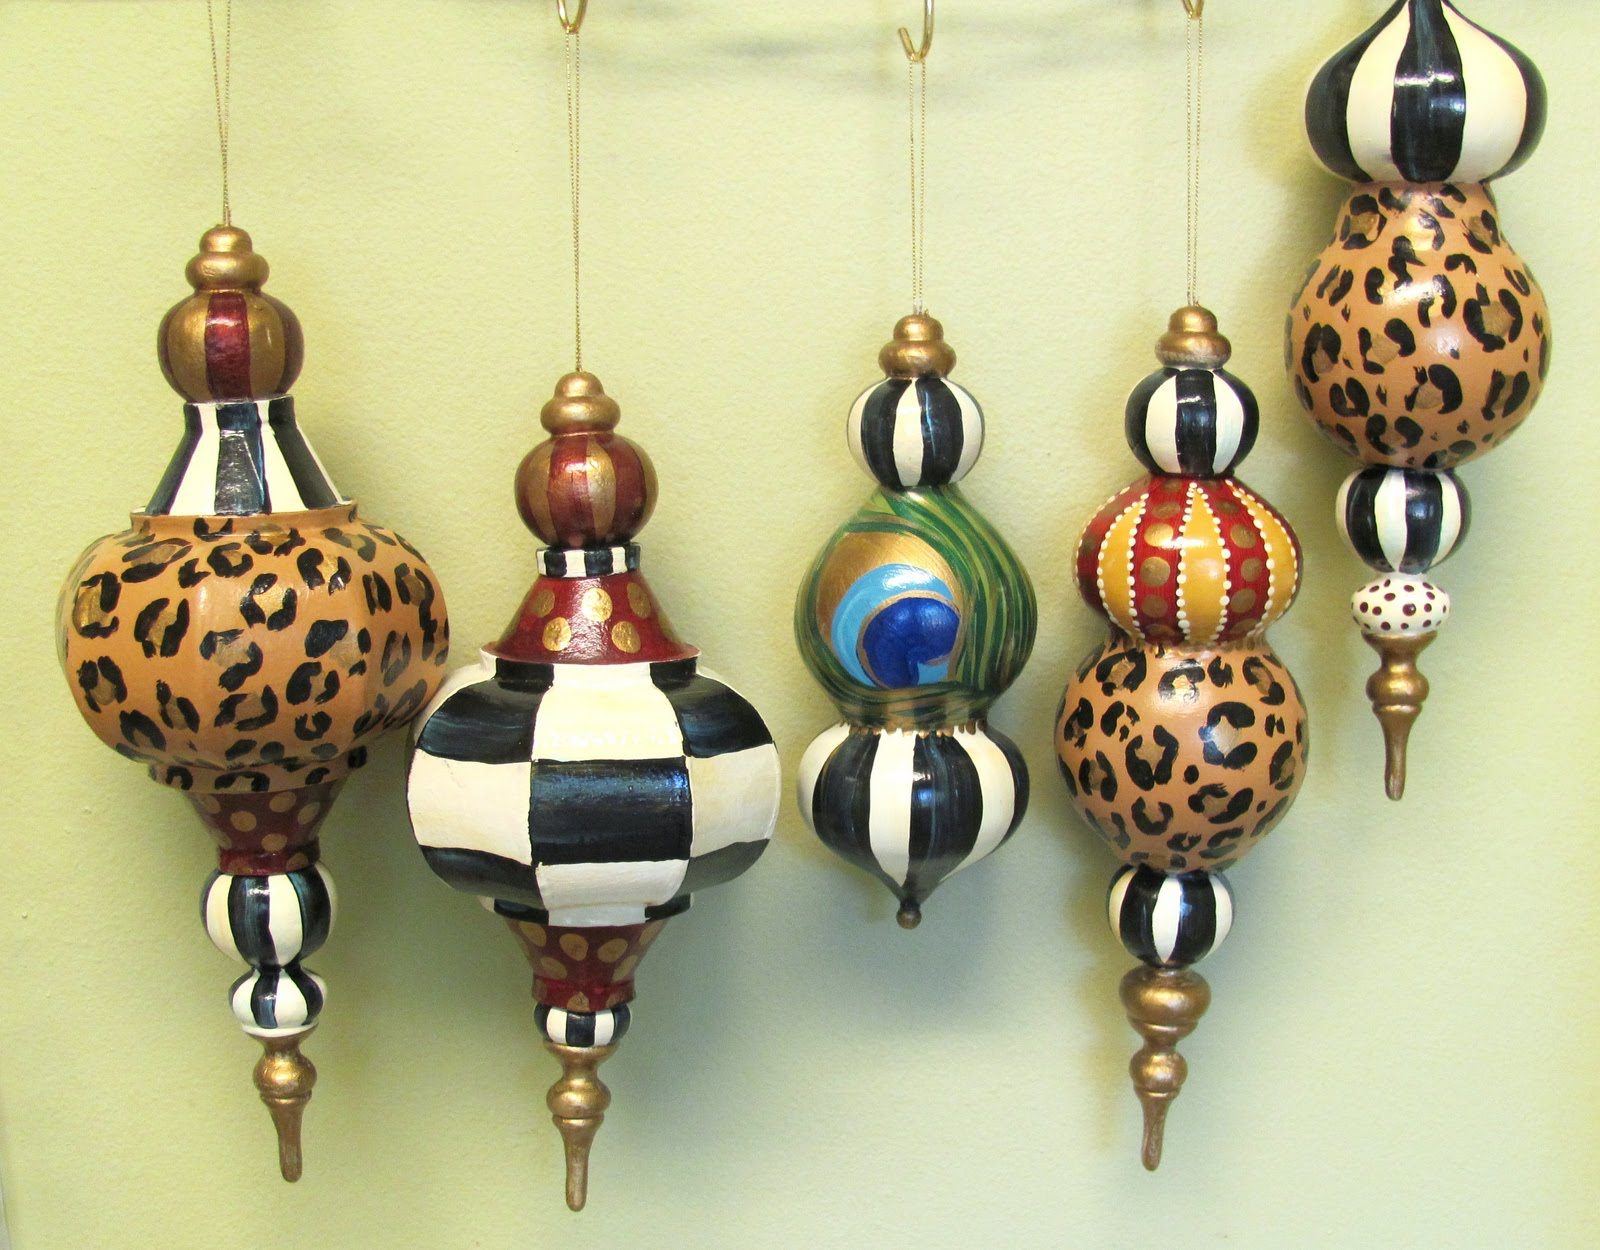 Paper christmas decorations to print - Diy Hand Painted Designer Finial Ornaments